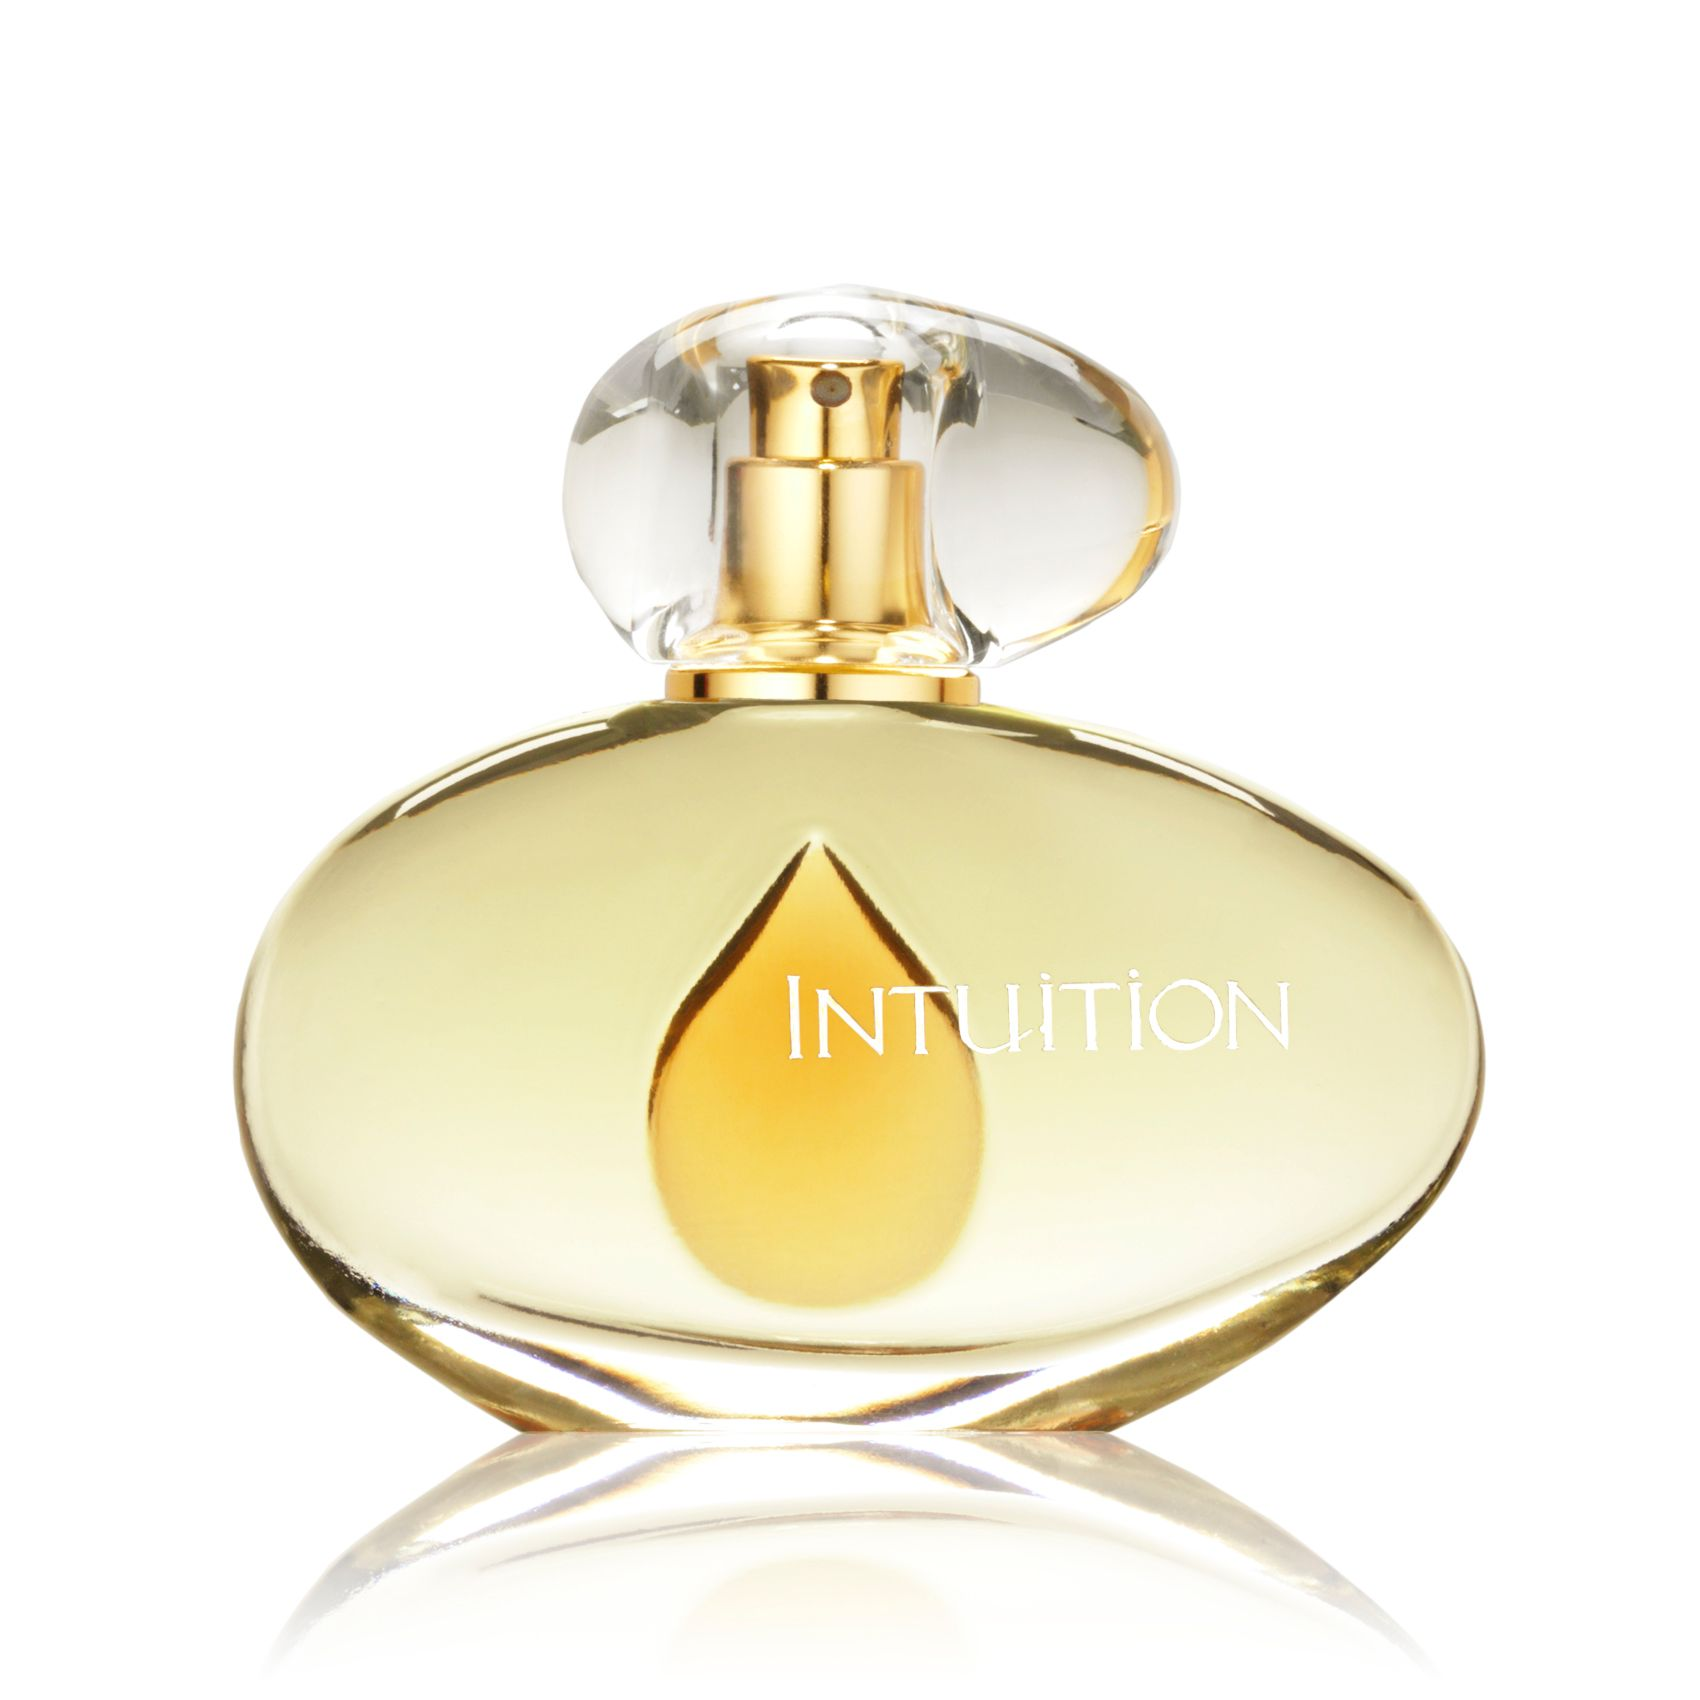 Intuition Eau de Parfum Spray